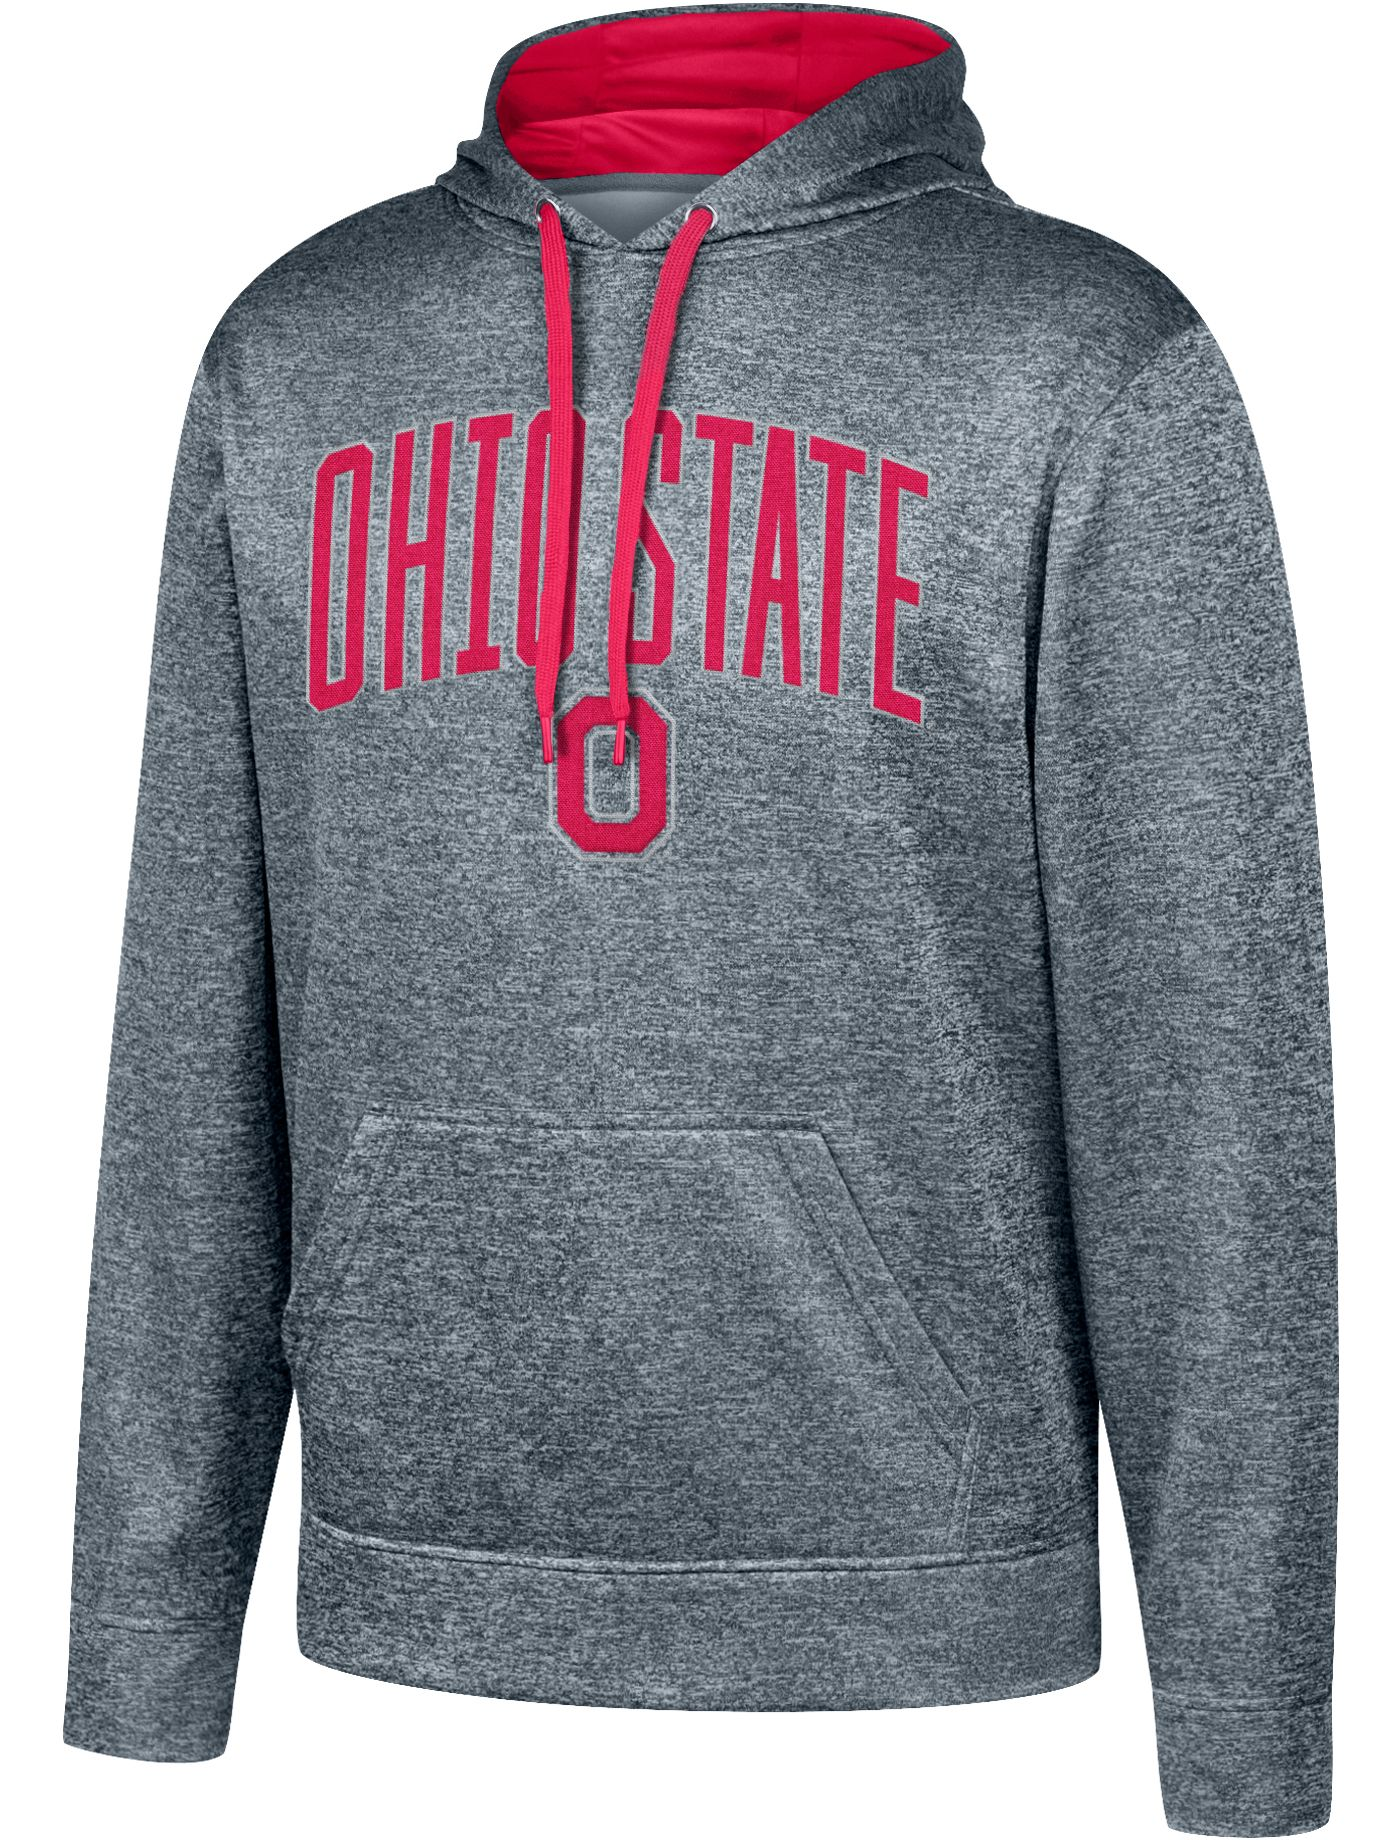 Scarlet & Gray Men's Ohio State Buckeyes Gray Foundation Poly Hoodie